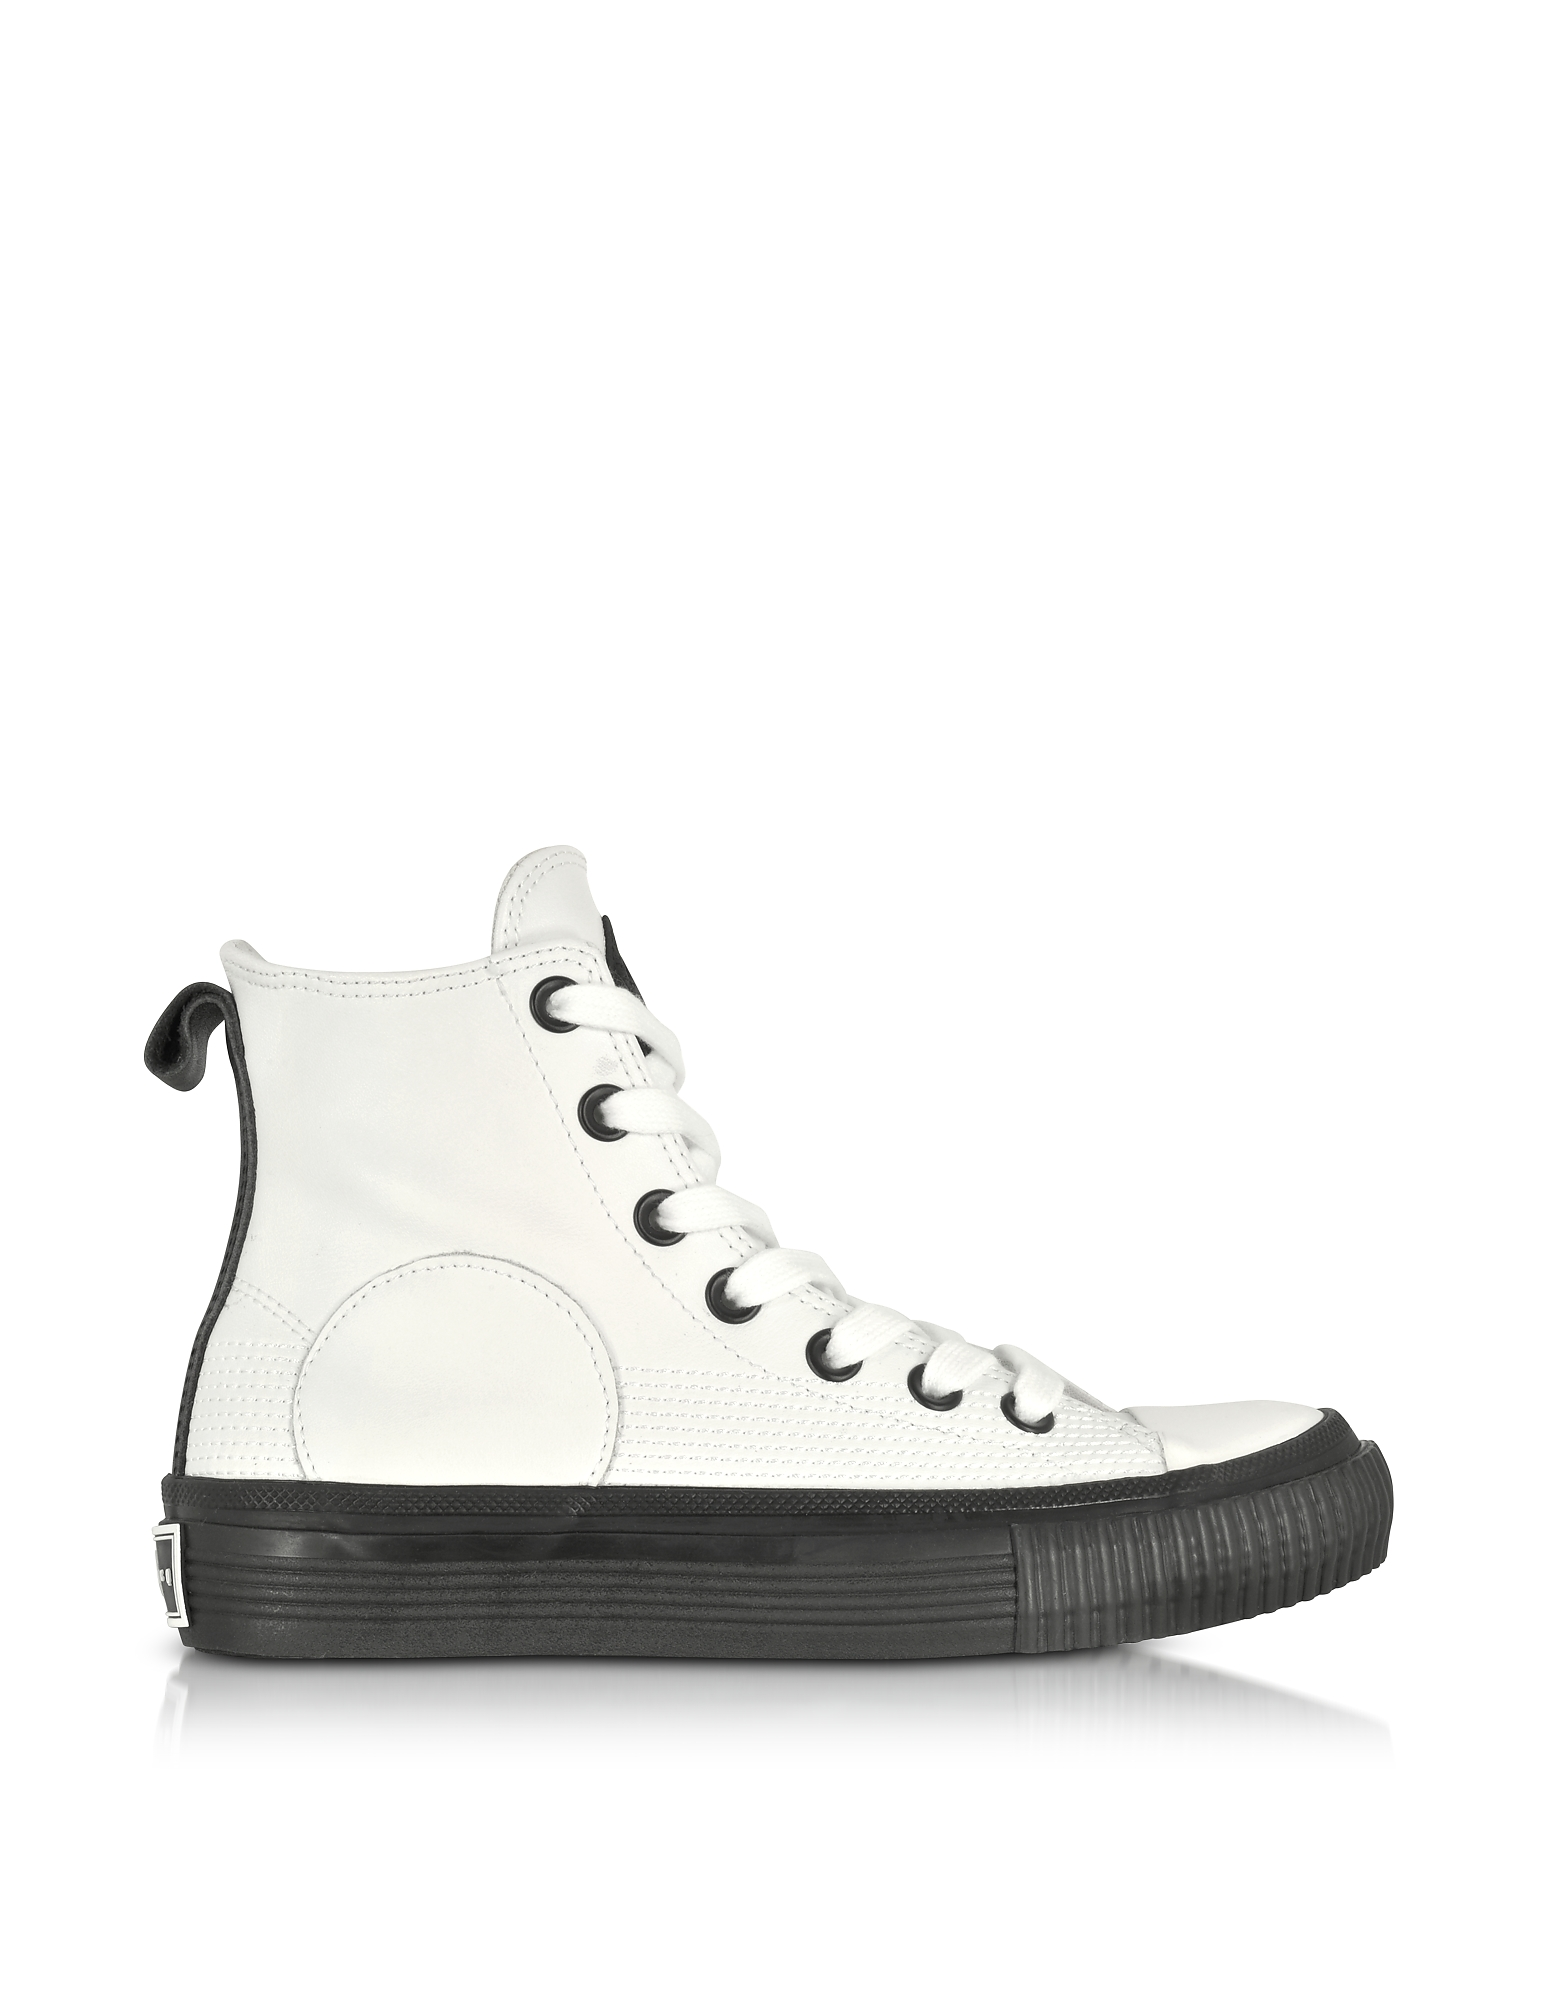 McQ Alexander McQueen Shoes, White Smooth Leather Plimsoll High Sneakers